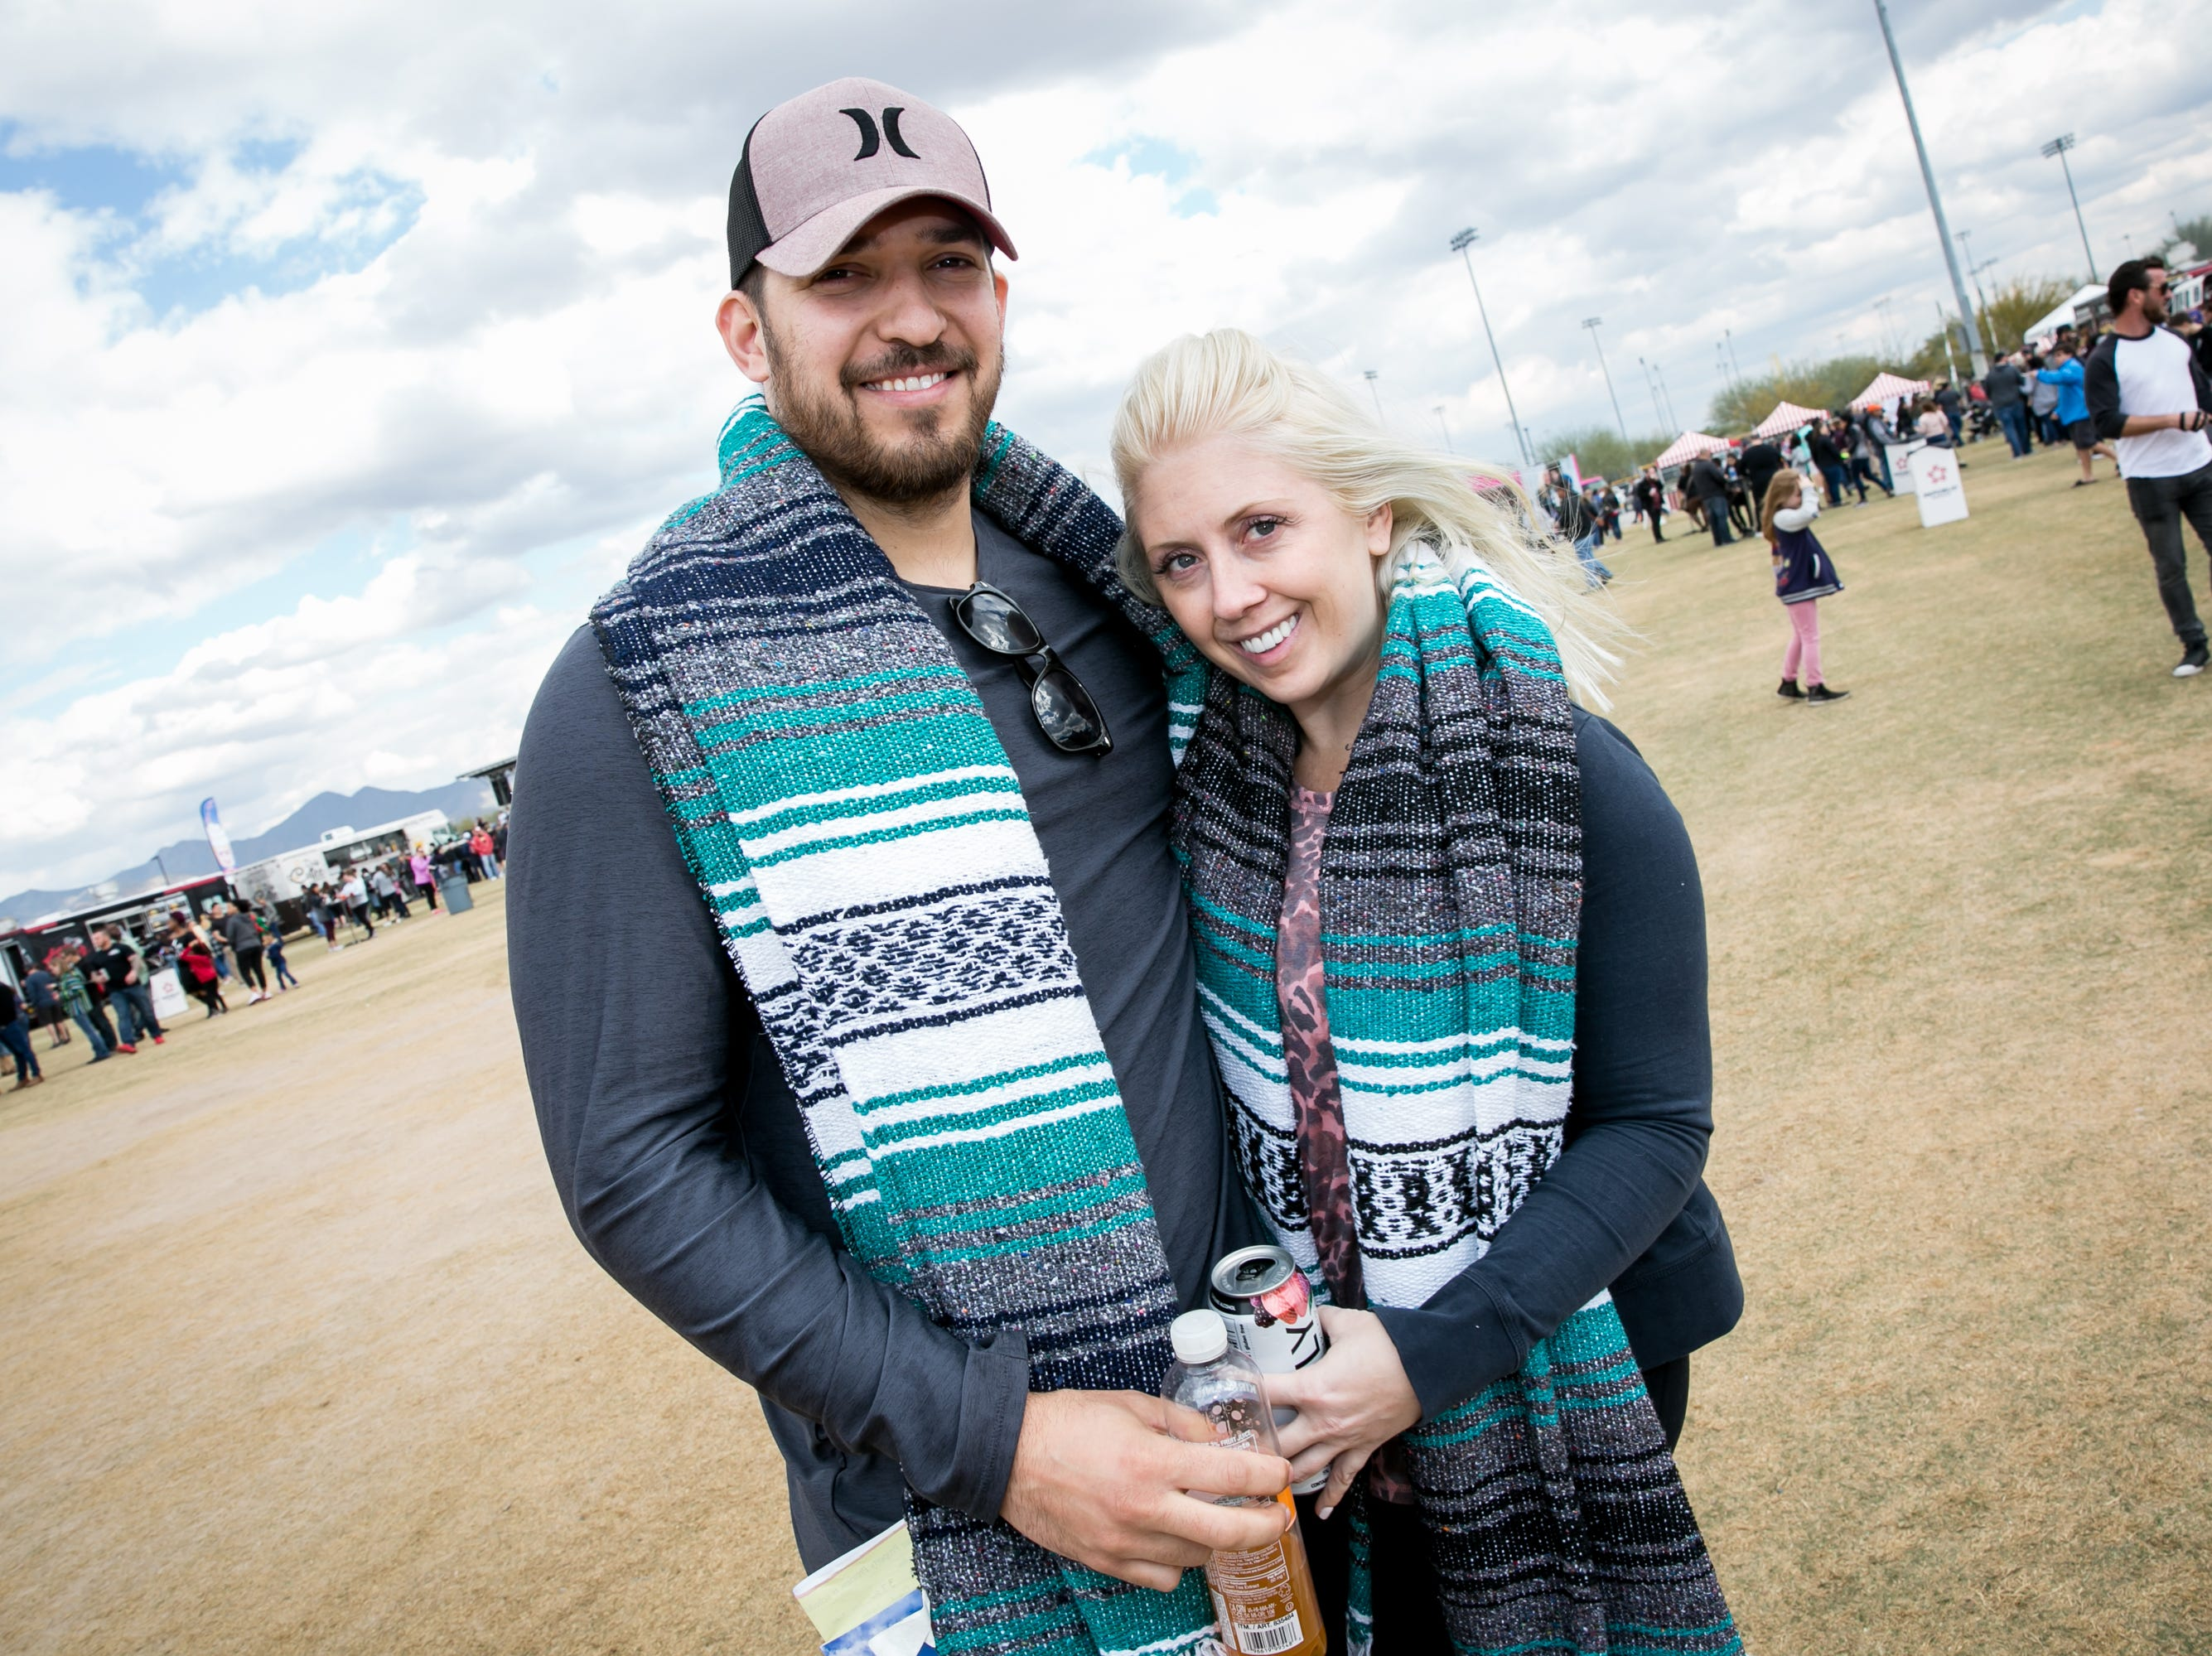 Blankets were a great call during the Street Eats Food Truck Festival at Salt River Fields near Scottsdale on Feb. 17, 2019.